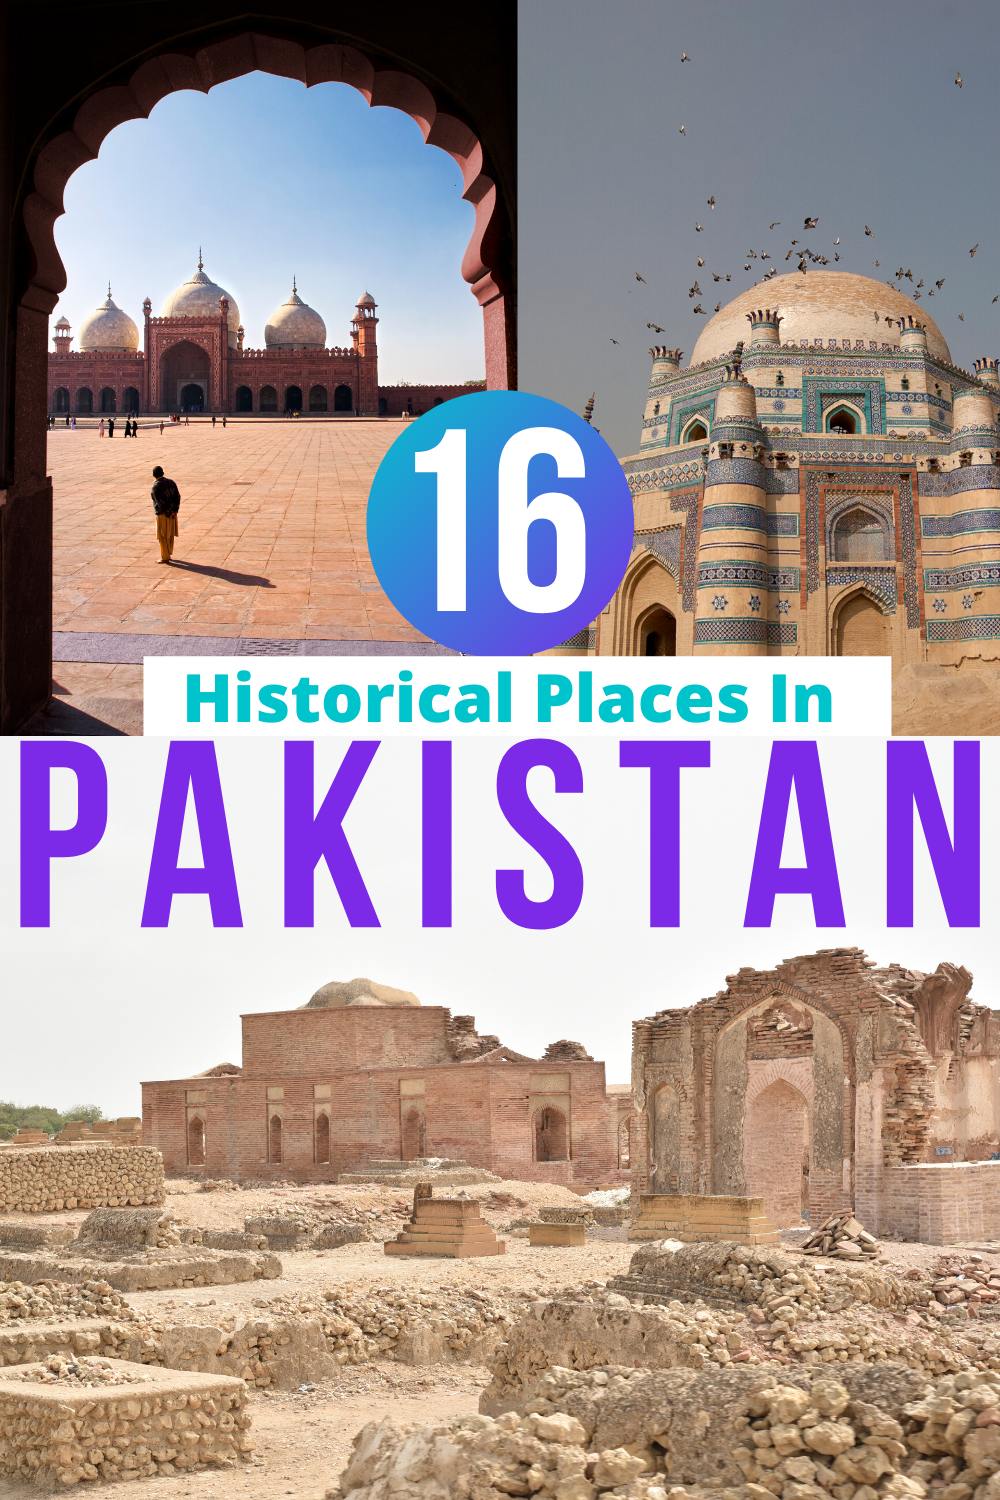 16 Incredible Historical Places To Visit In Pakistan In 2020 Travel Destinations Asia Historical Place Asia Travel